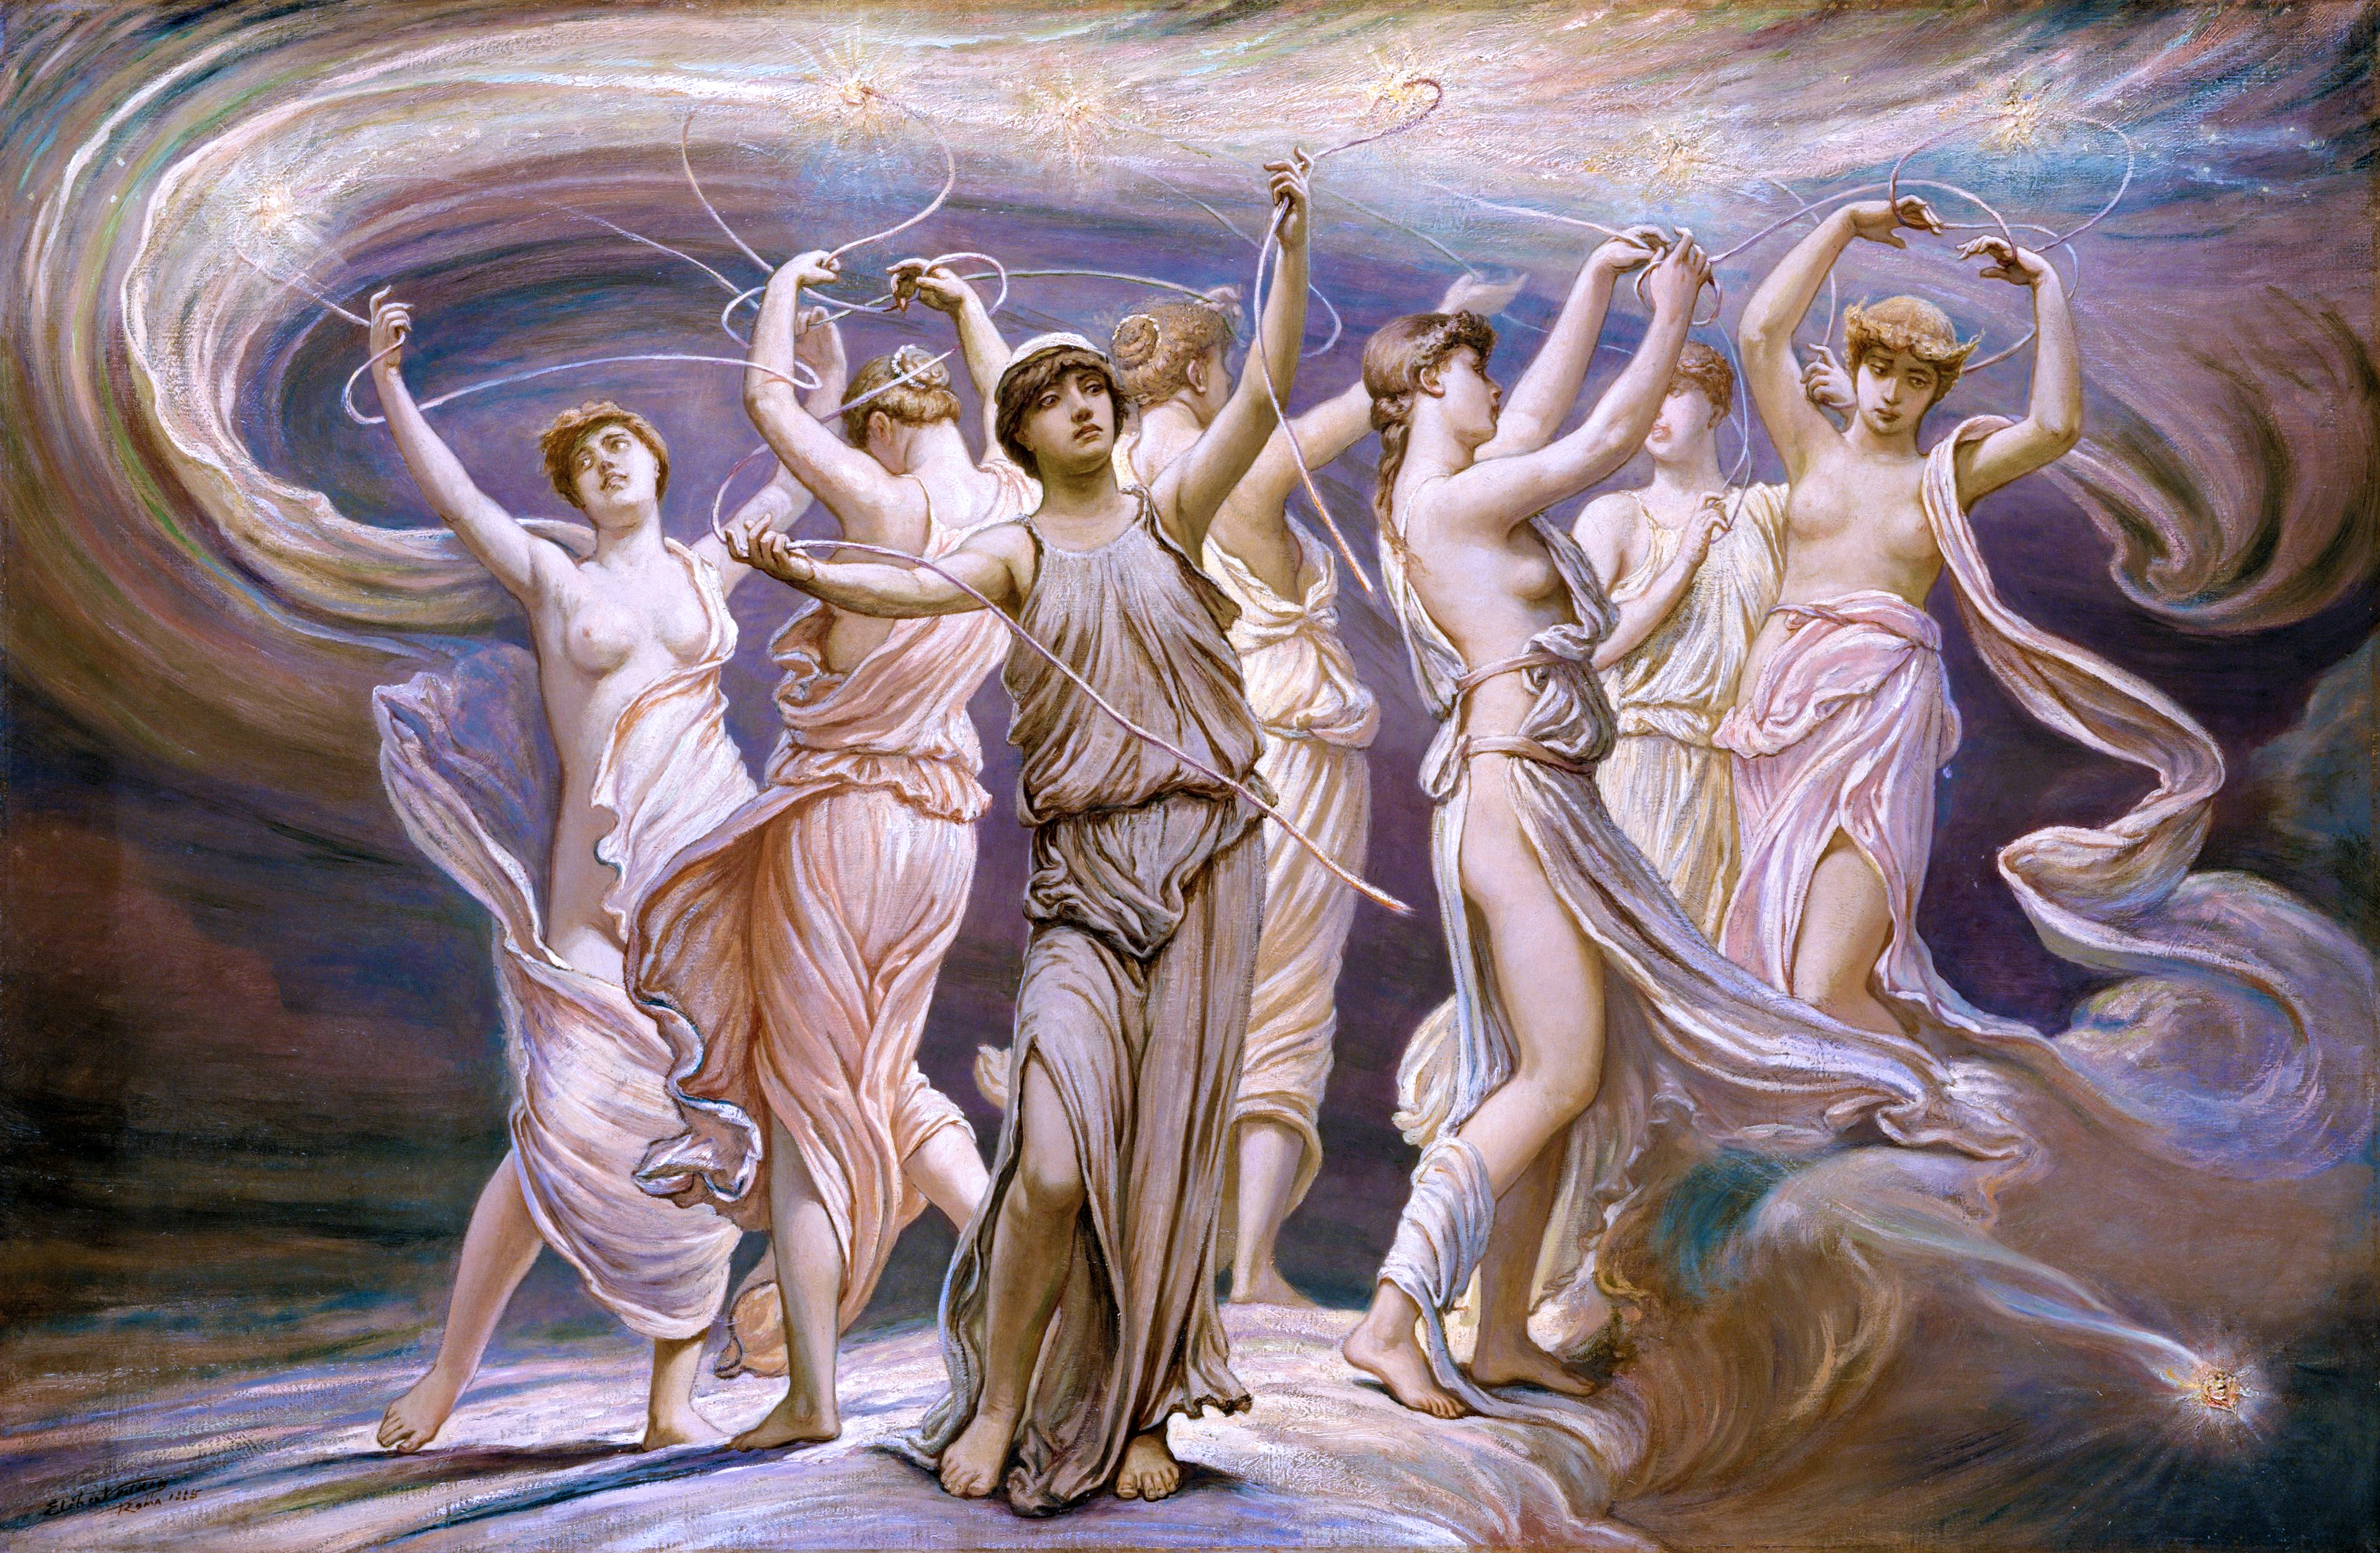 greek myth Greek mythology is the body of myths and legends belonging to the ancient greeks, concerning their gods and heroes, the nature of the world, and the origins and significance of their own cult and ritual.